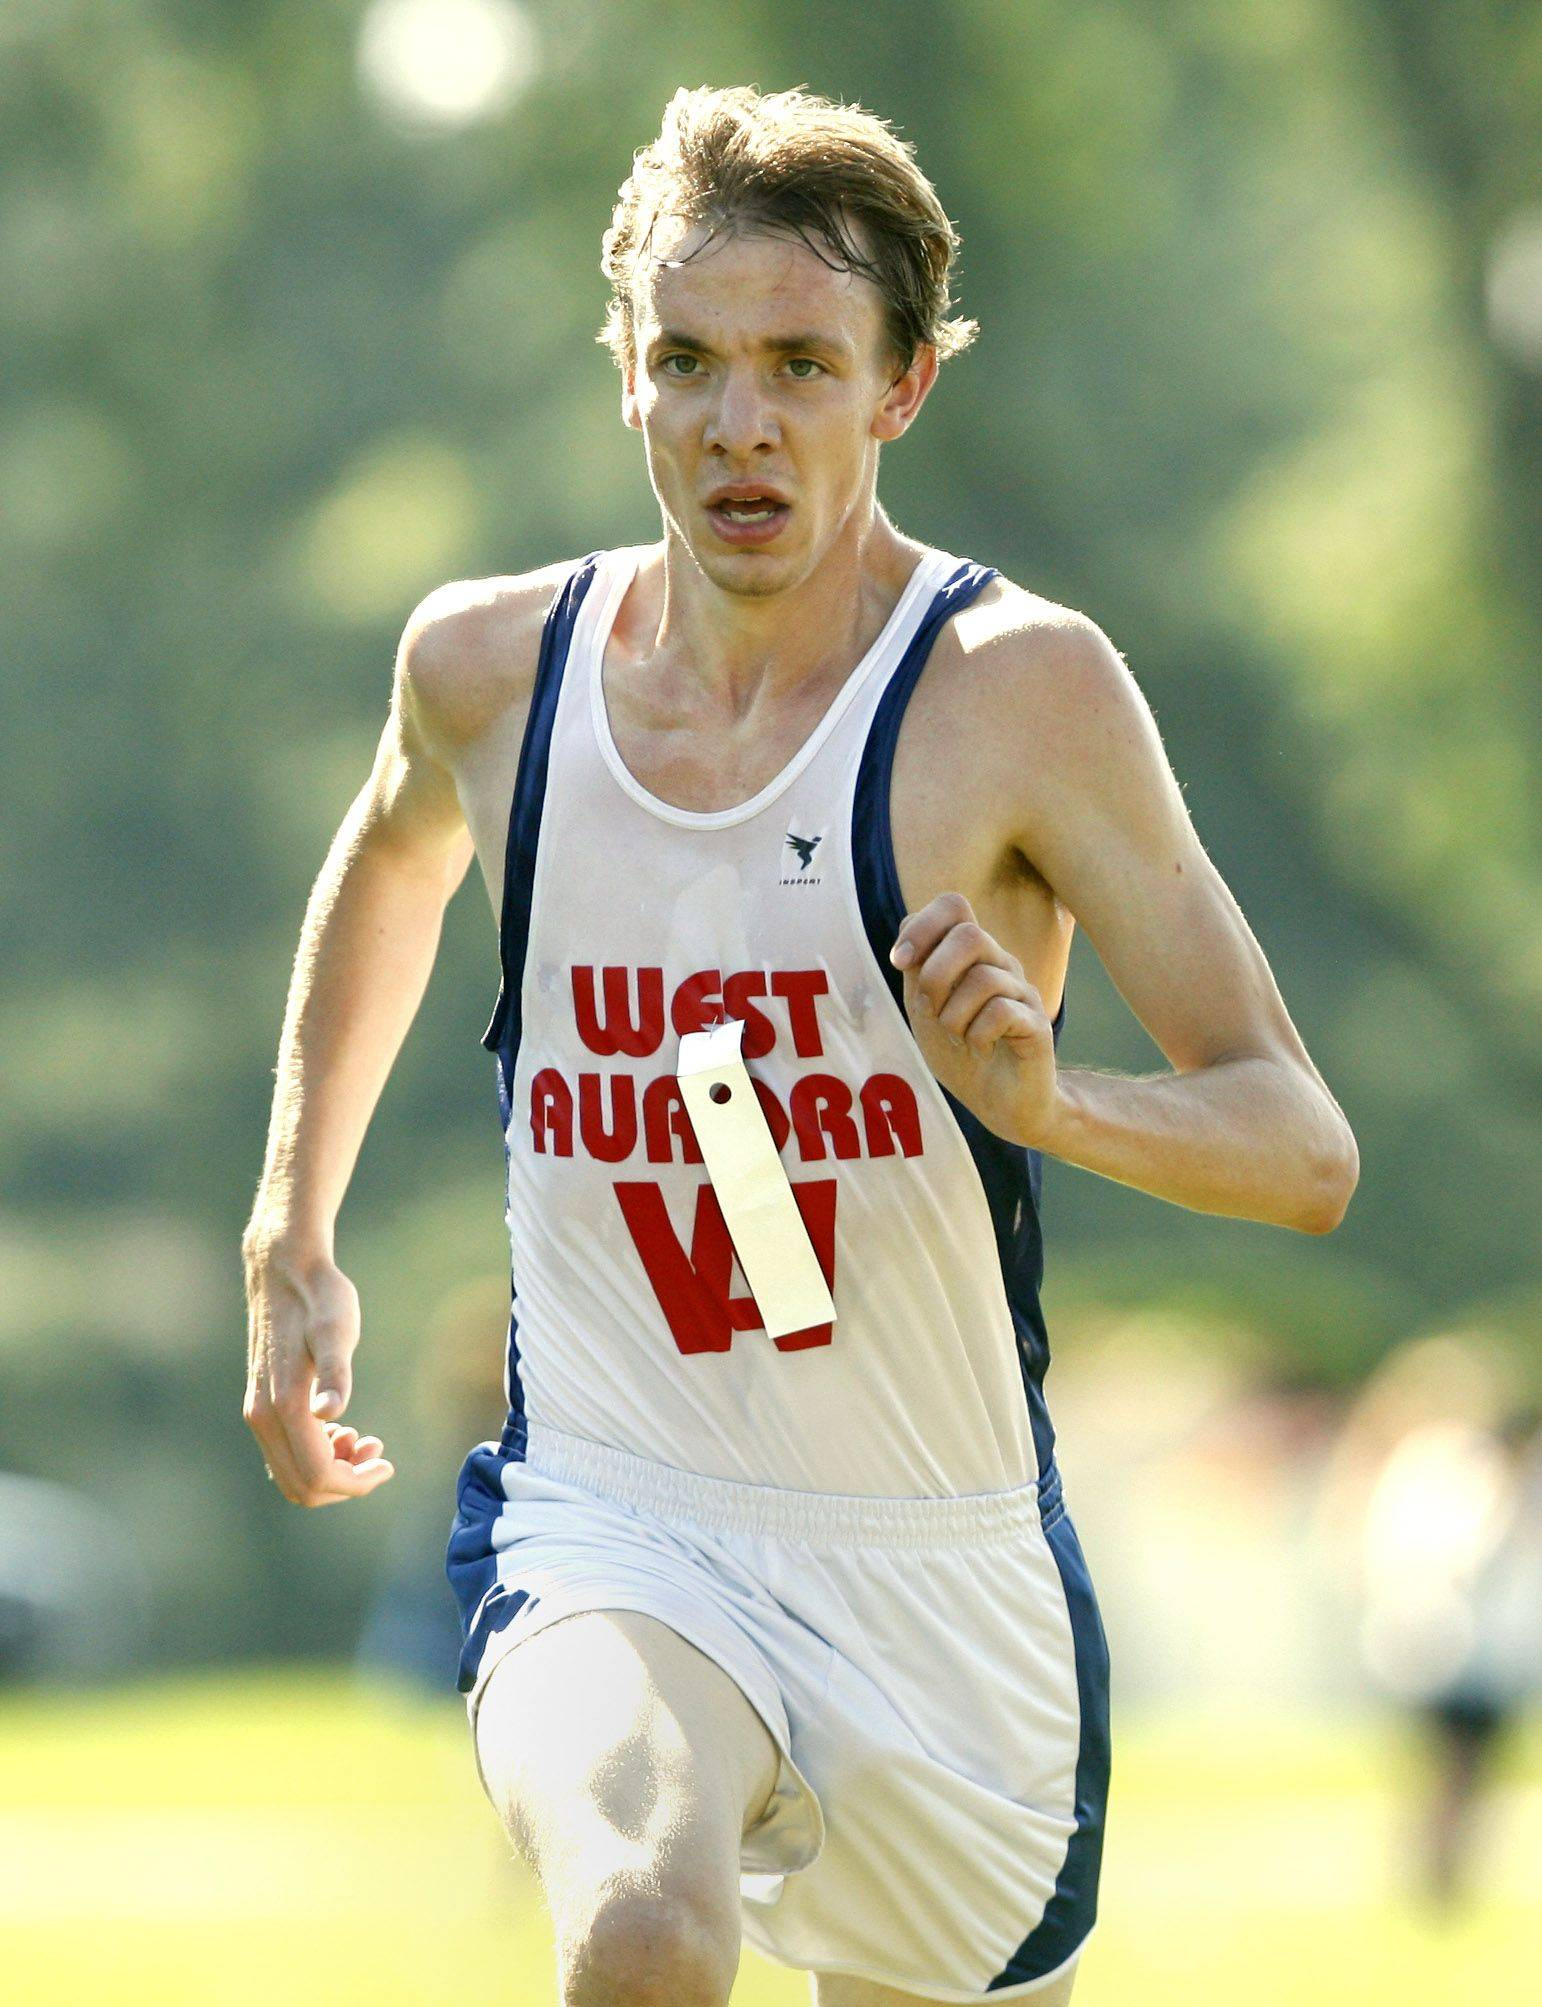 West Aurora's Josh Robinson finishes second during a cross country meet at Marmion High School.